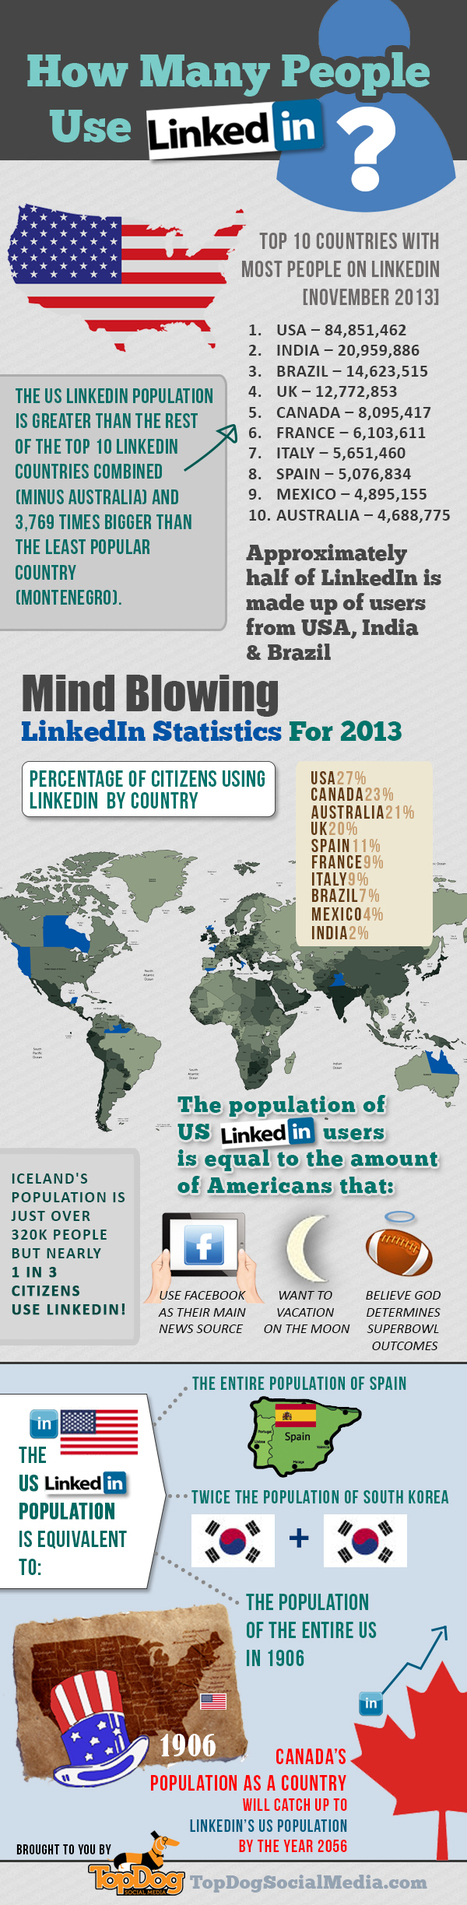 How Many People Use LinkedIn? [Infographic] | What is it to be an Entrepreneur | Scoop.it